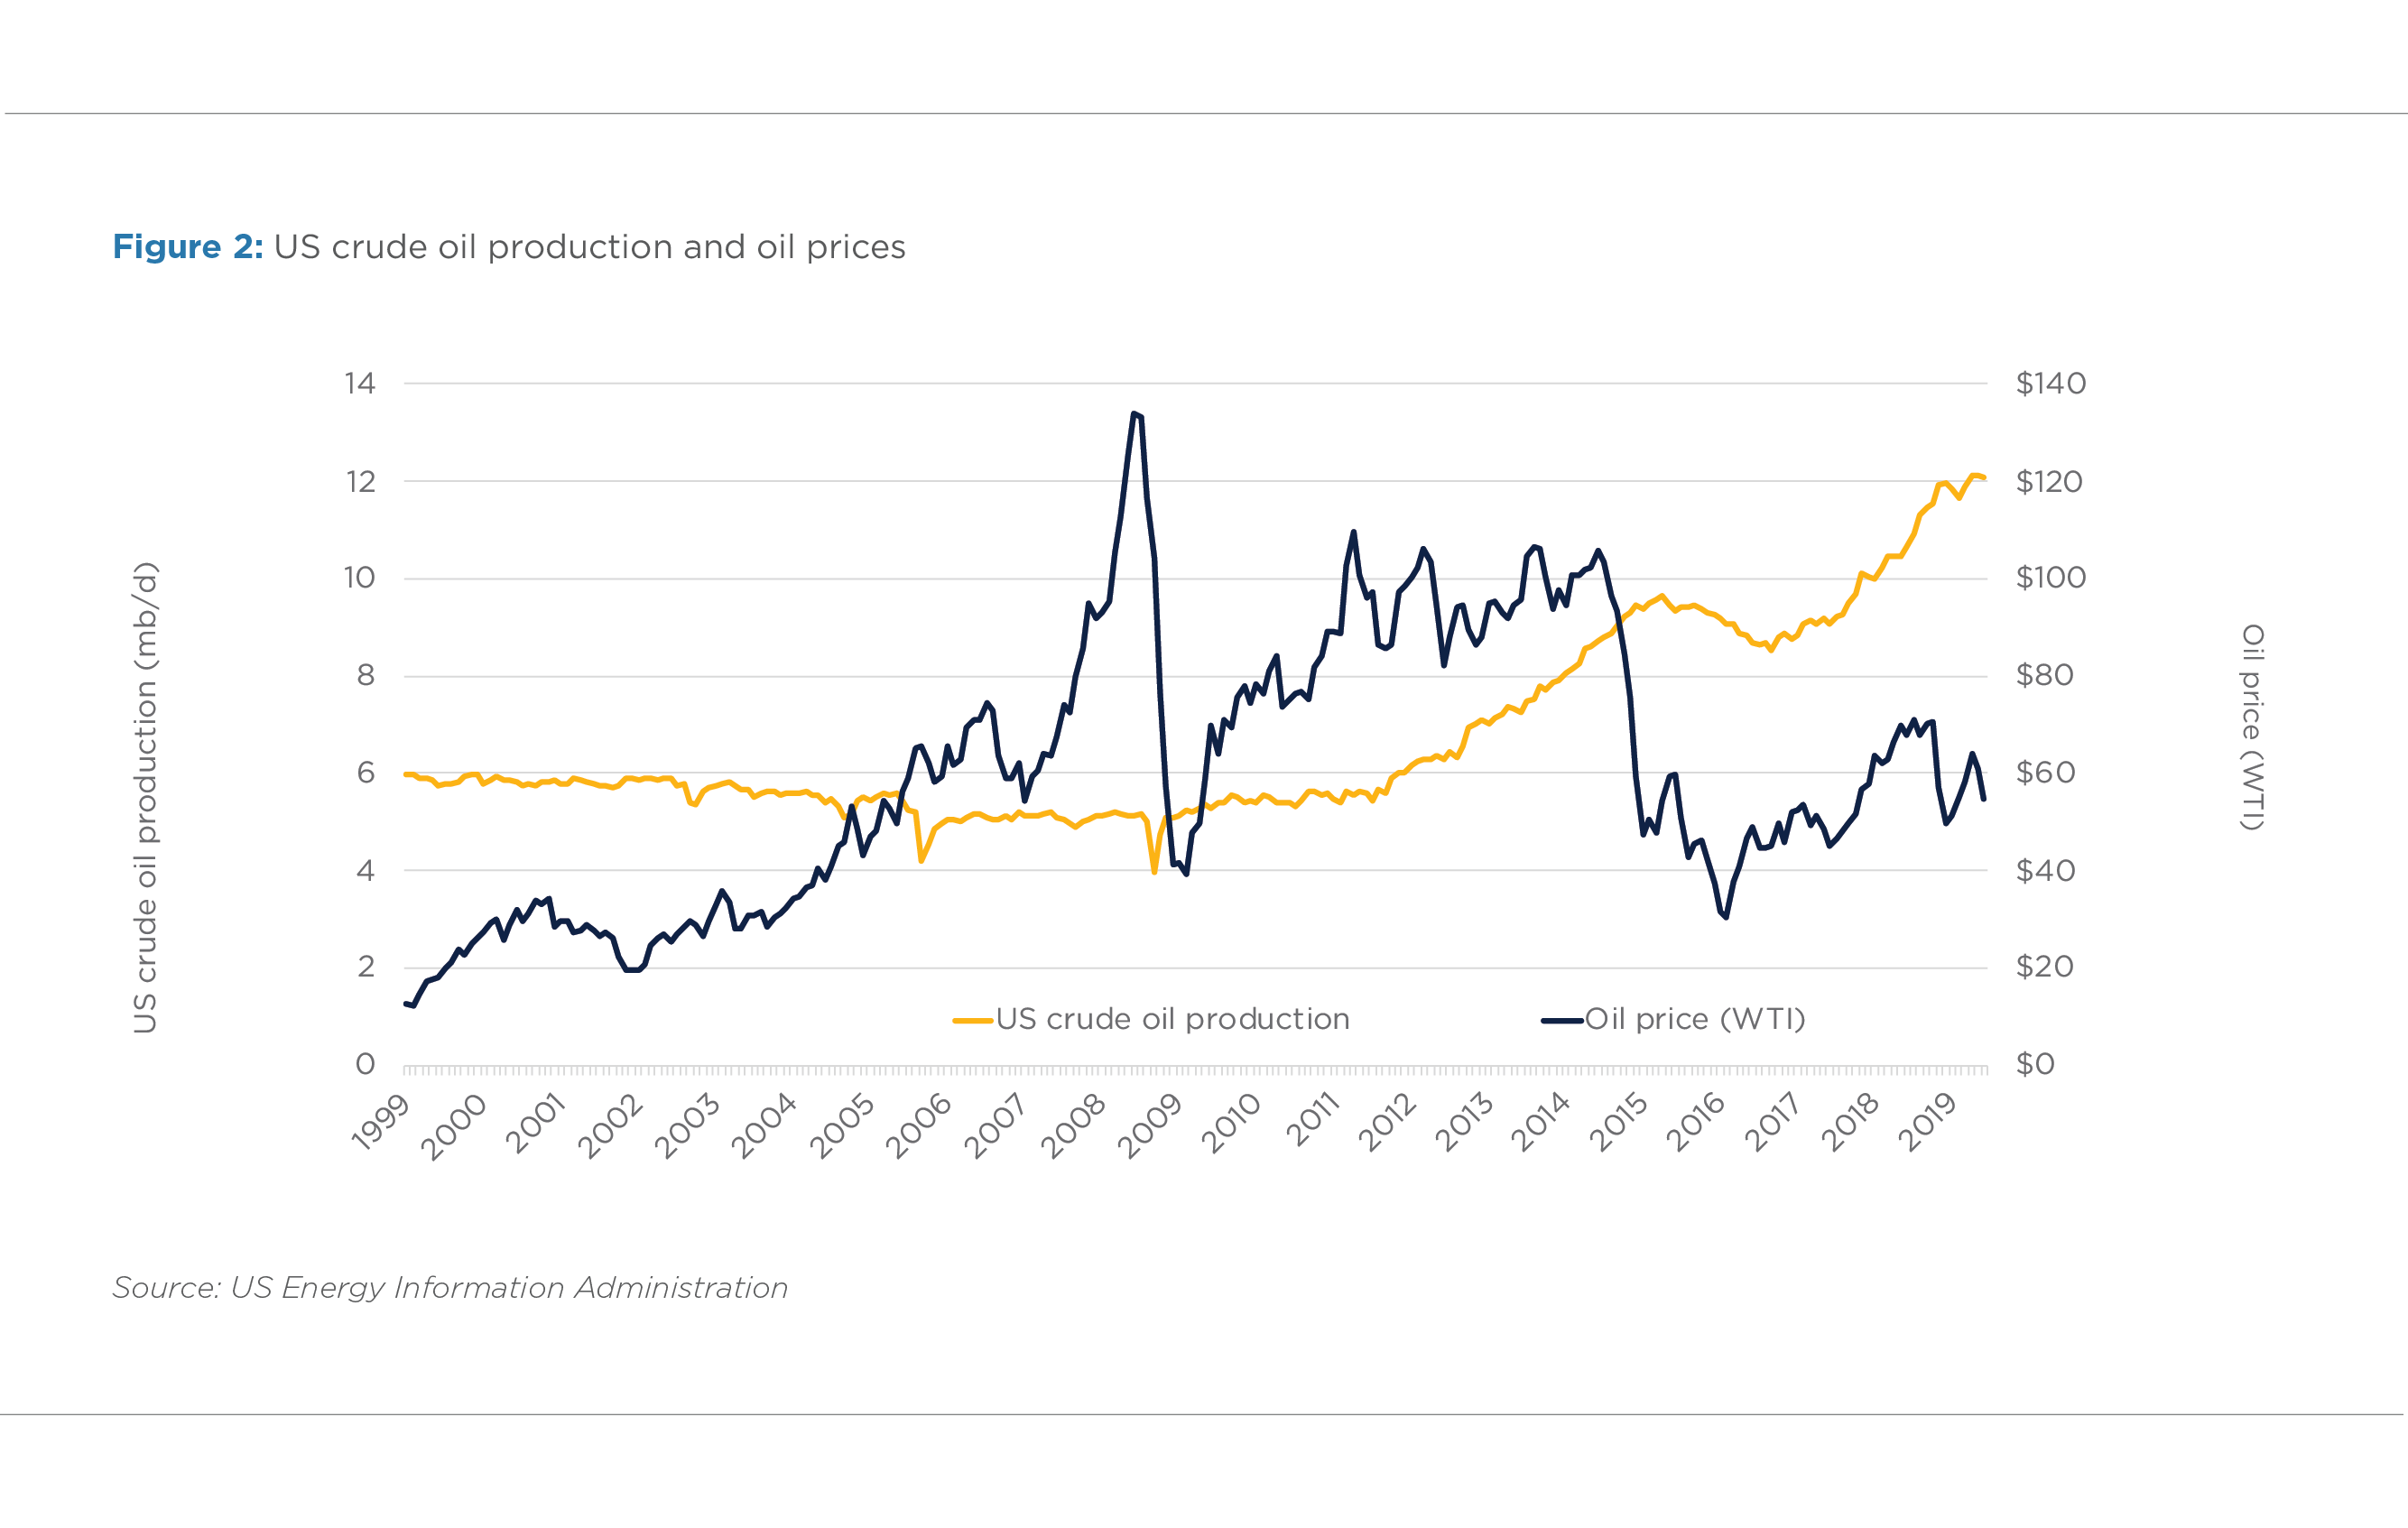 FIGURE 2. OIL PRICES AND US CRUDE OIL PRODUCTION